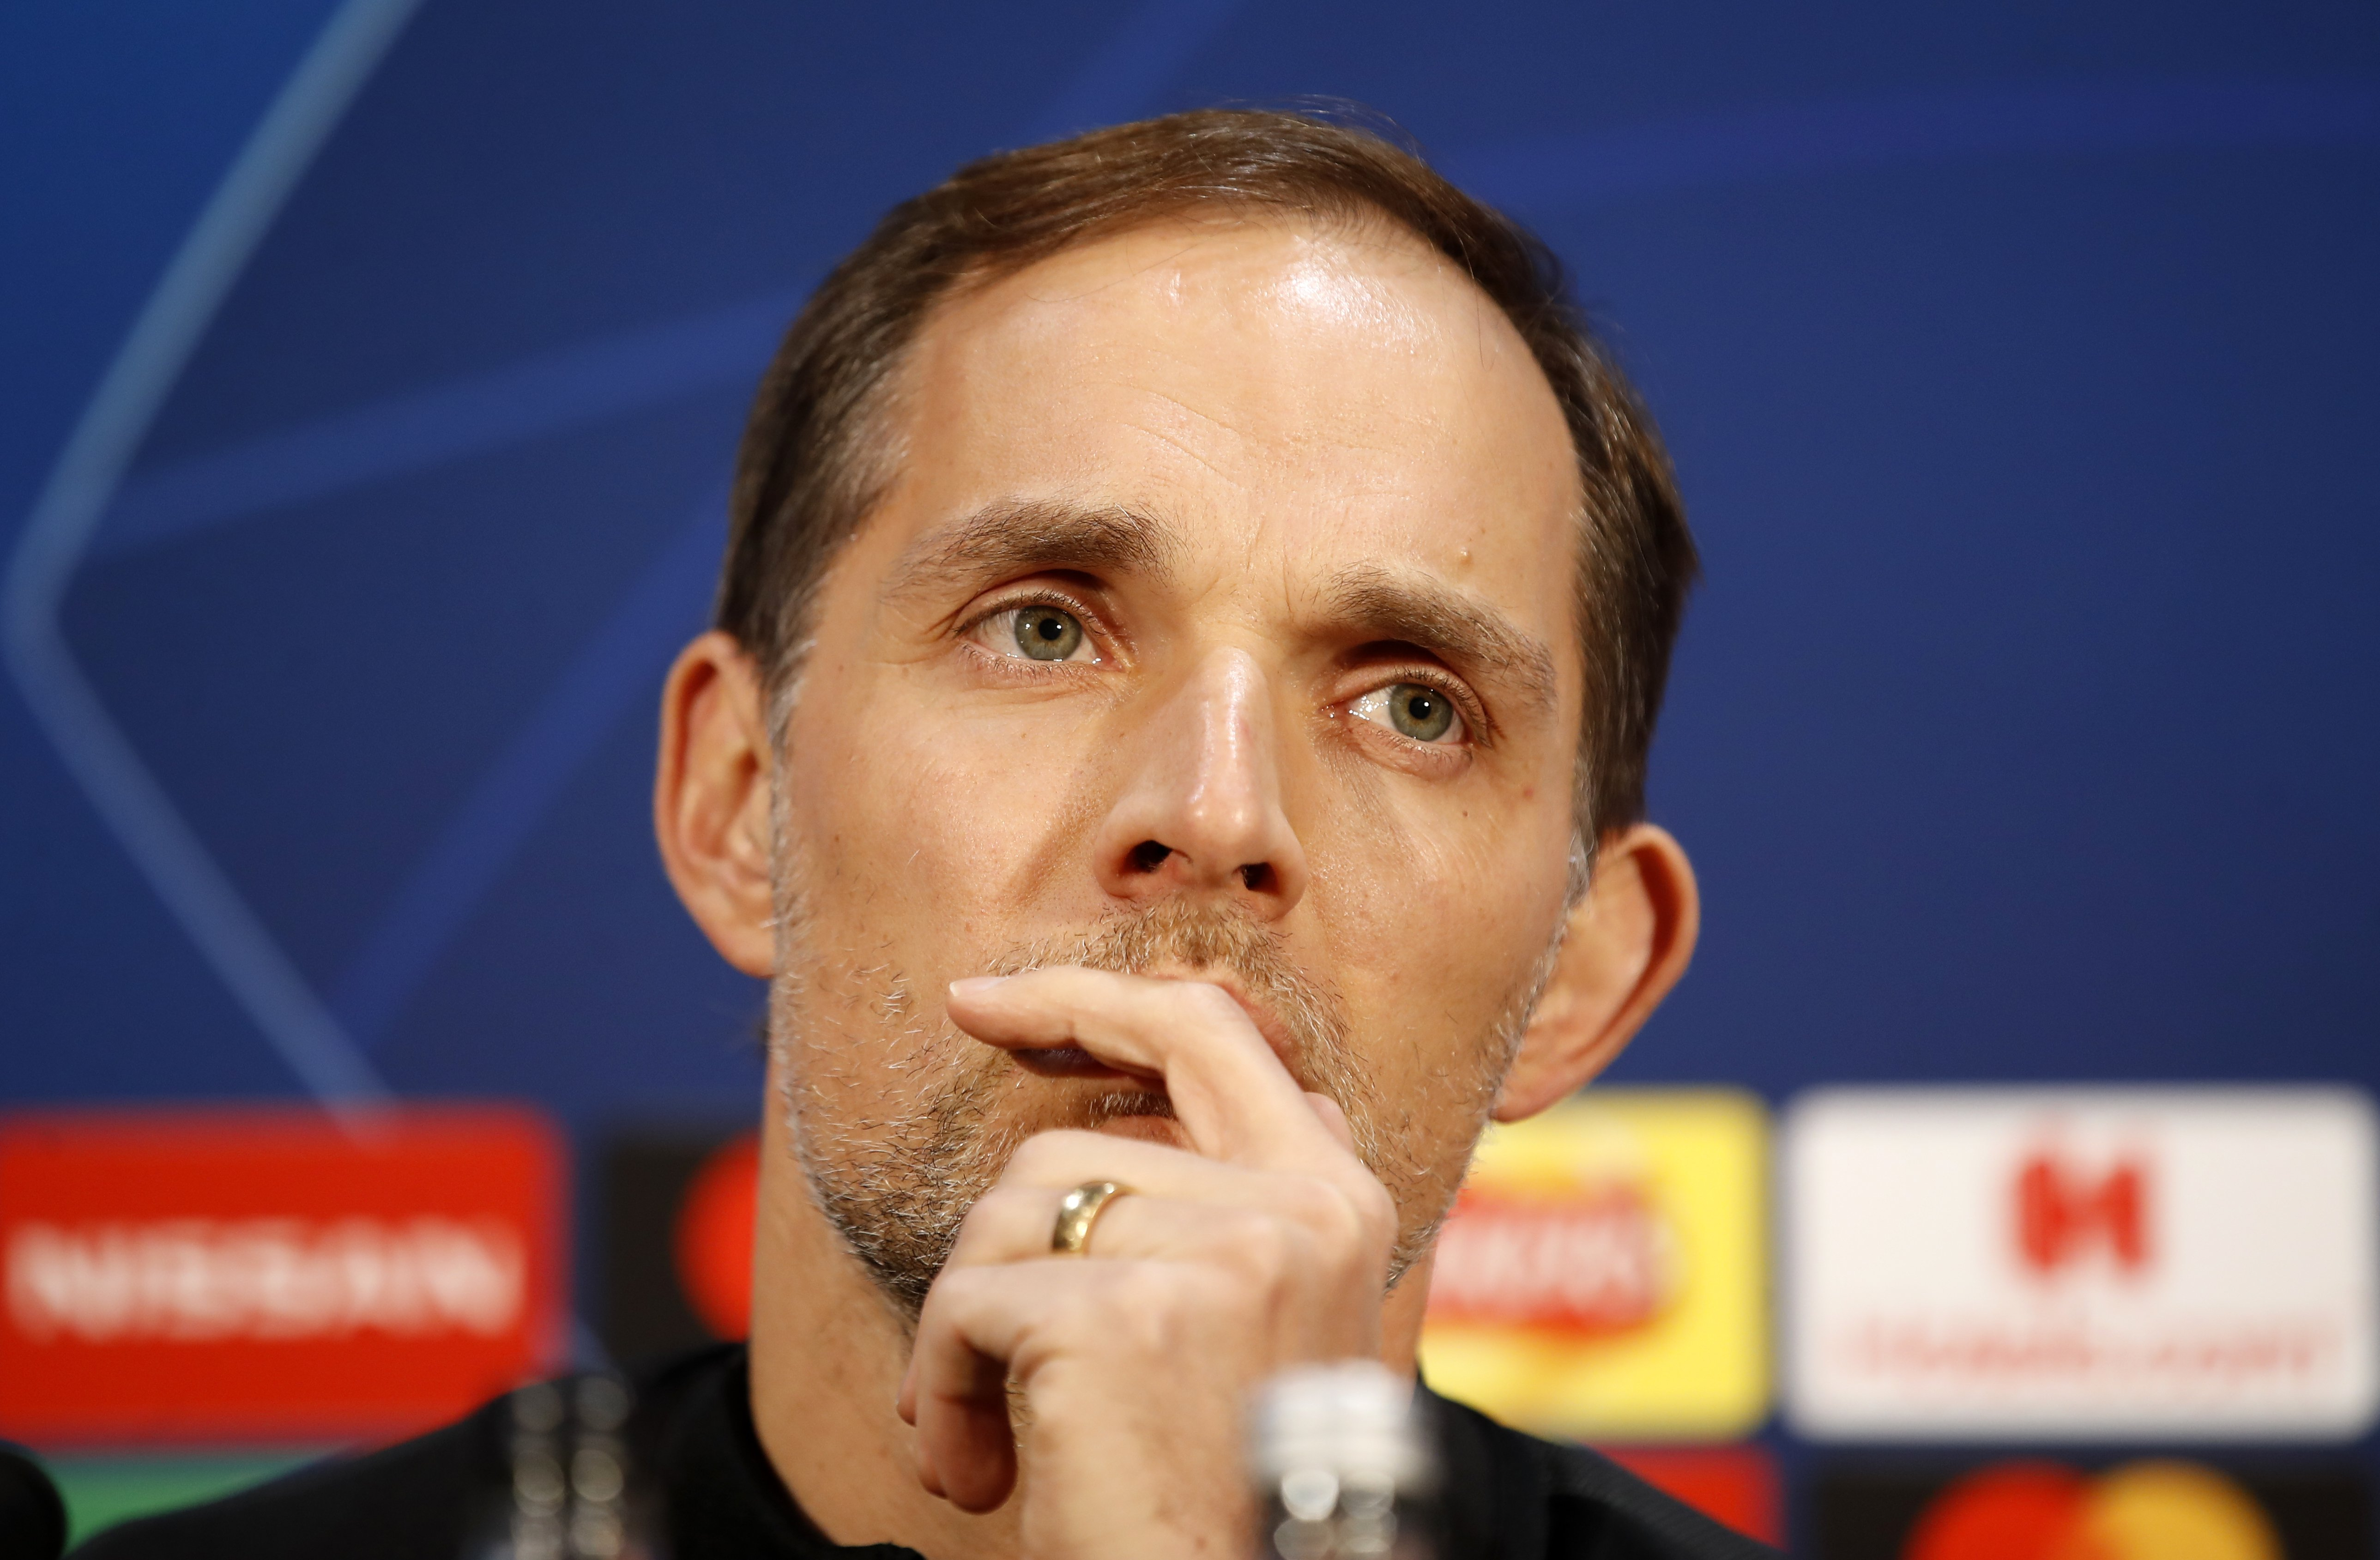 Chelsea pressure cooker will be familiar to new boss Thomas Tuchel